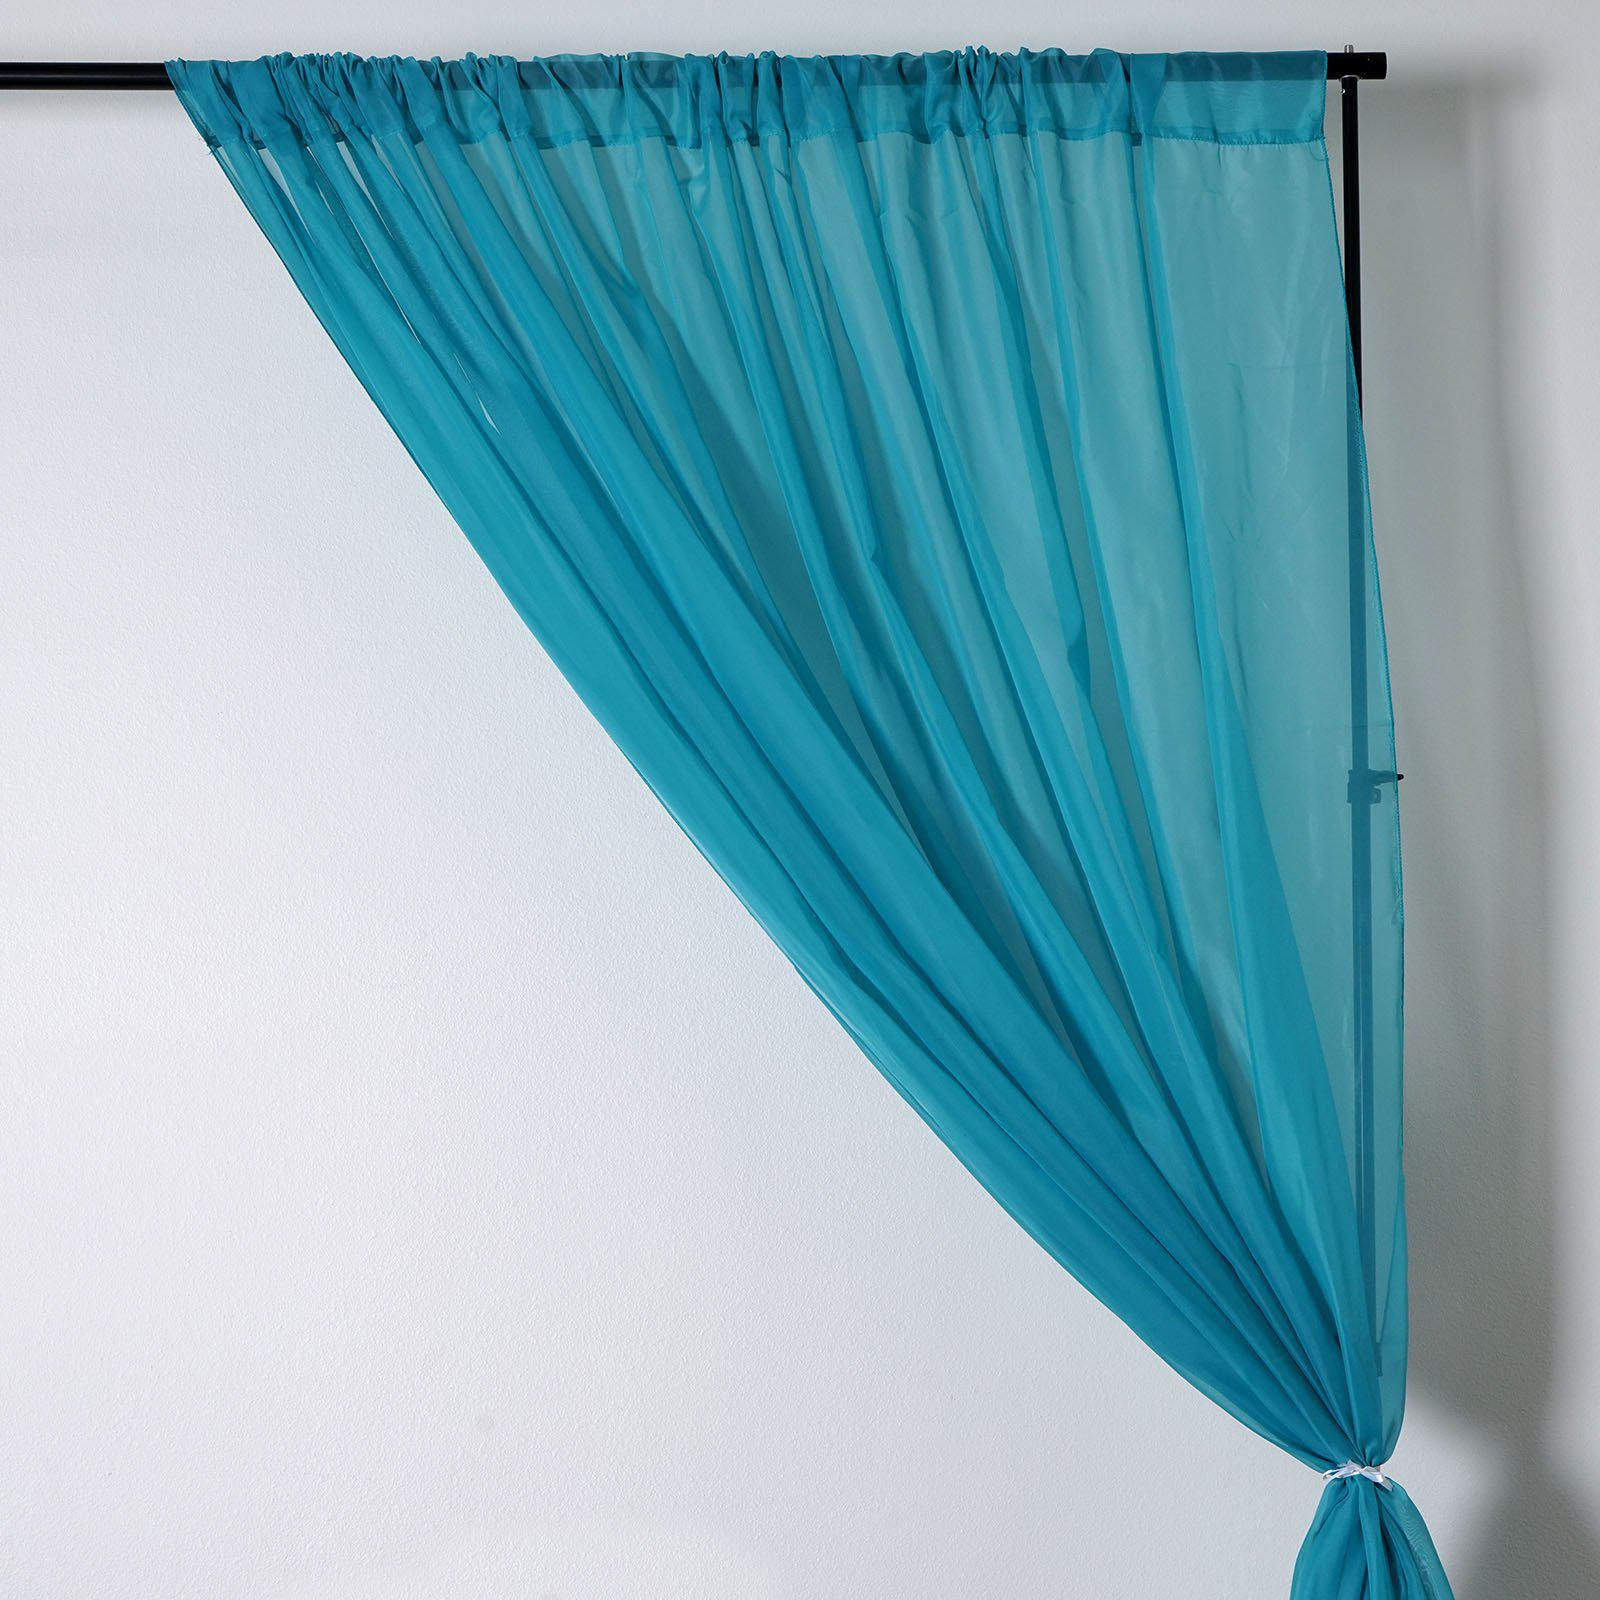 bq size curtain gray curtains full turquoise window treatments beautiful b and q grey